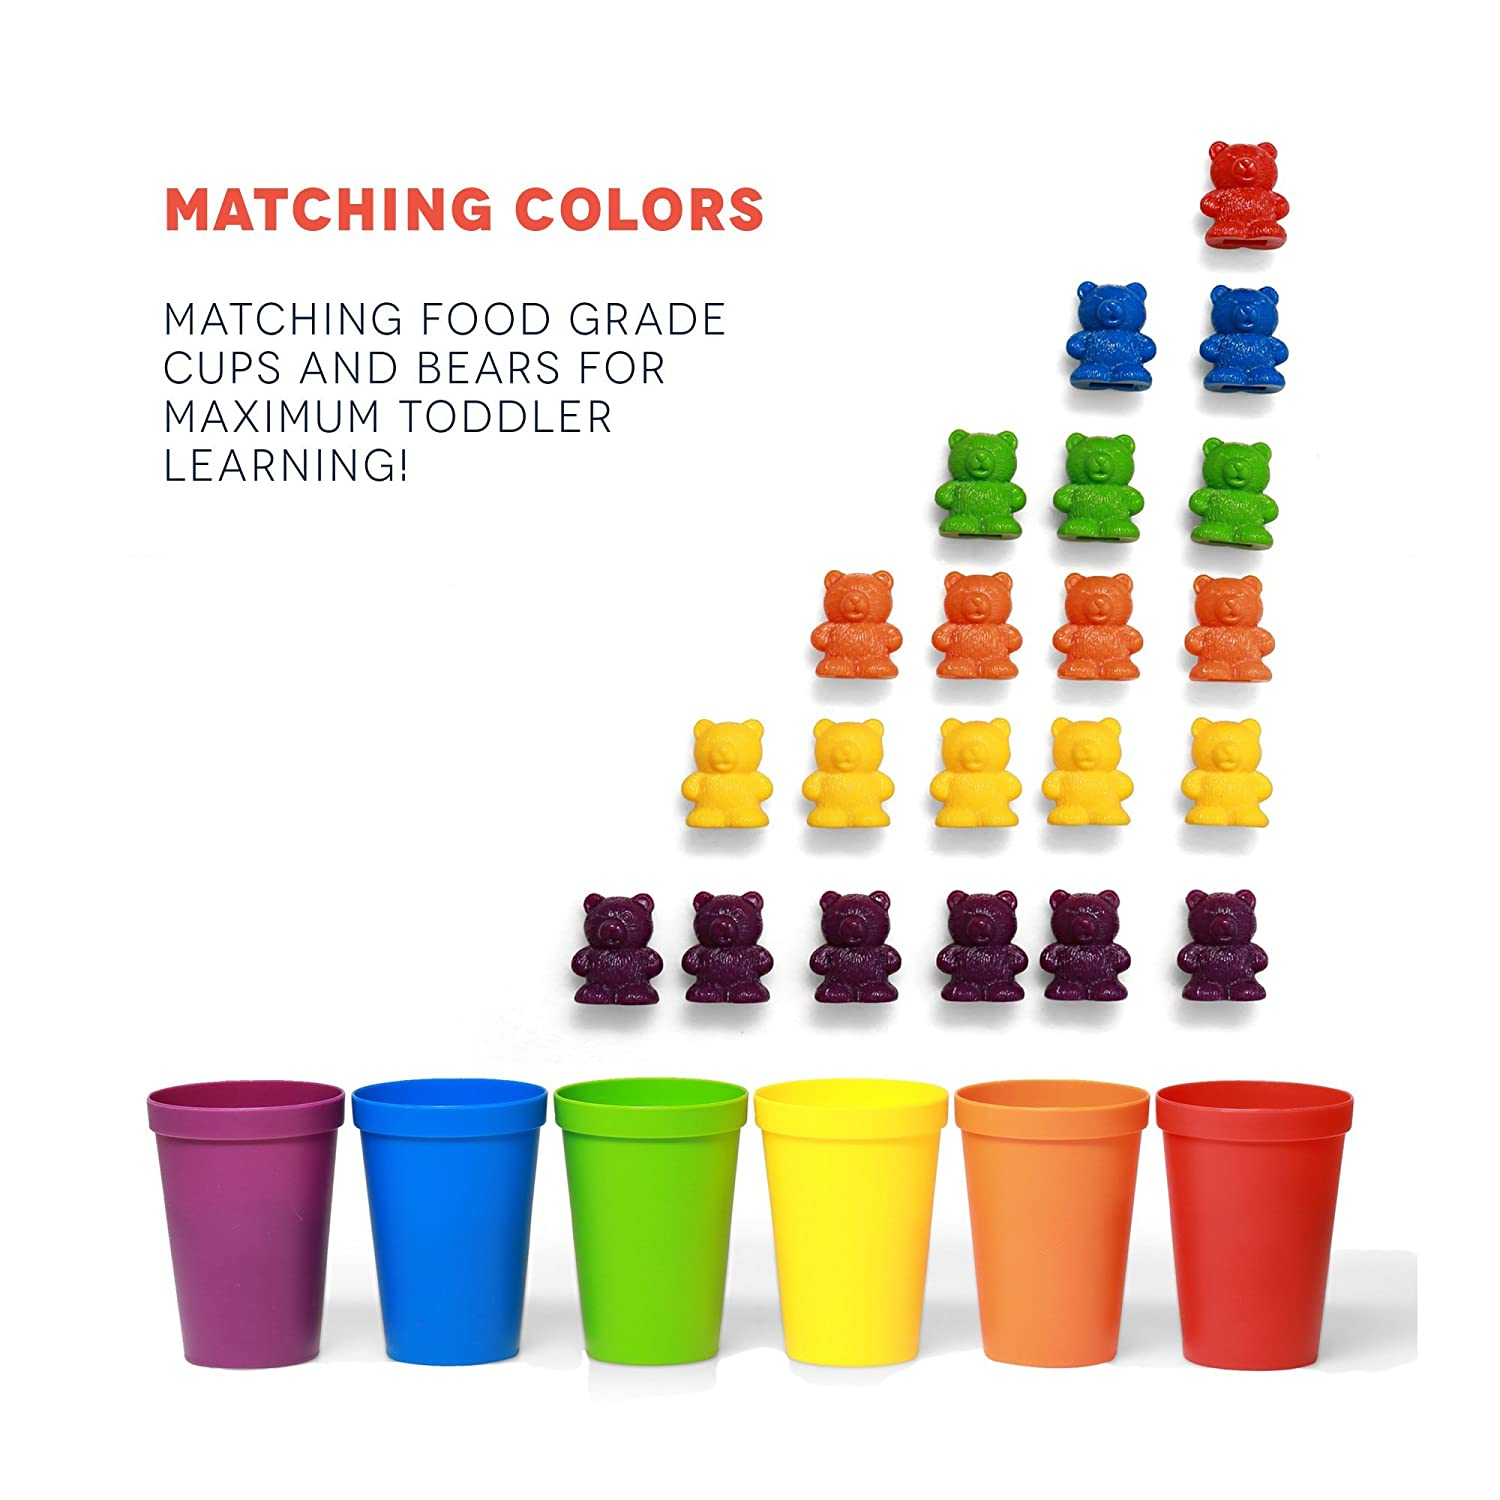 Amazon 72 Rainbow Colored Counting Bears With Cups For Children Montessori Toddler Learning Toys Colorful Educational Tool STEM